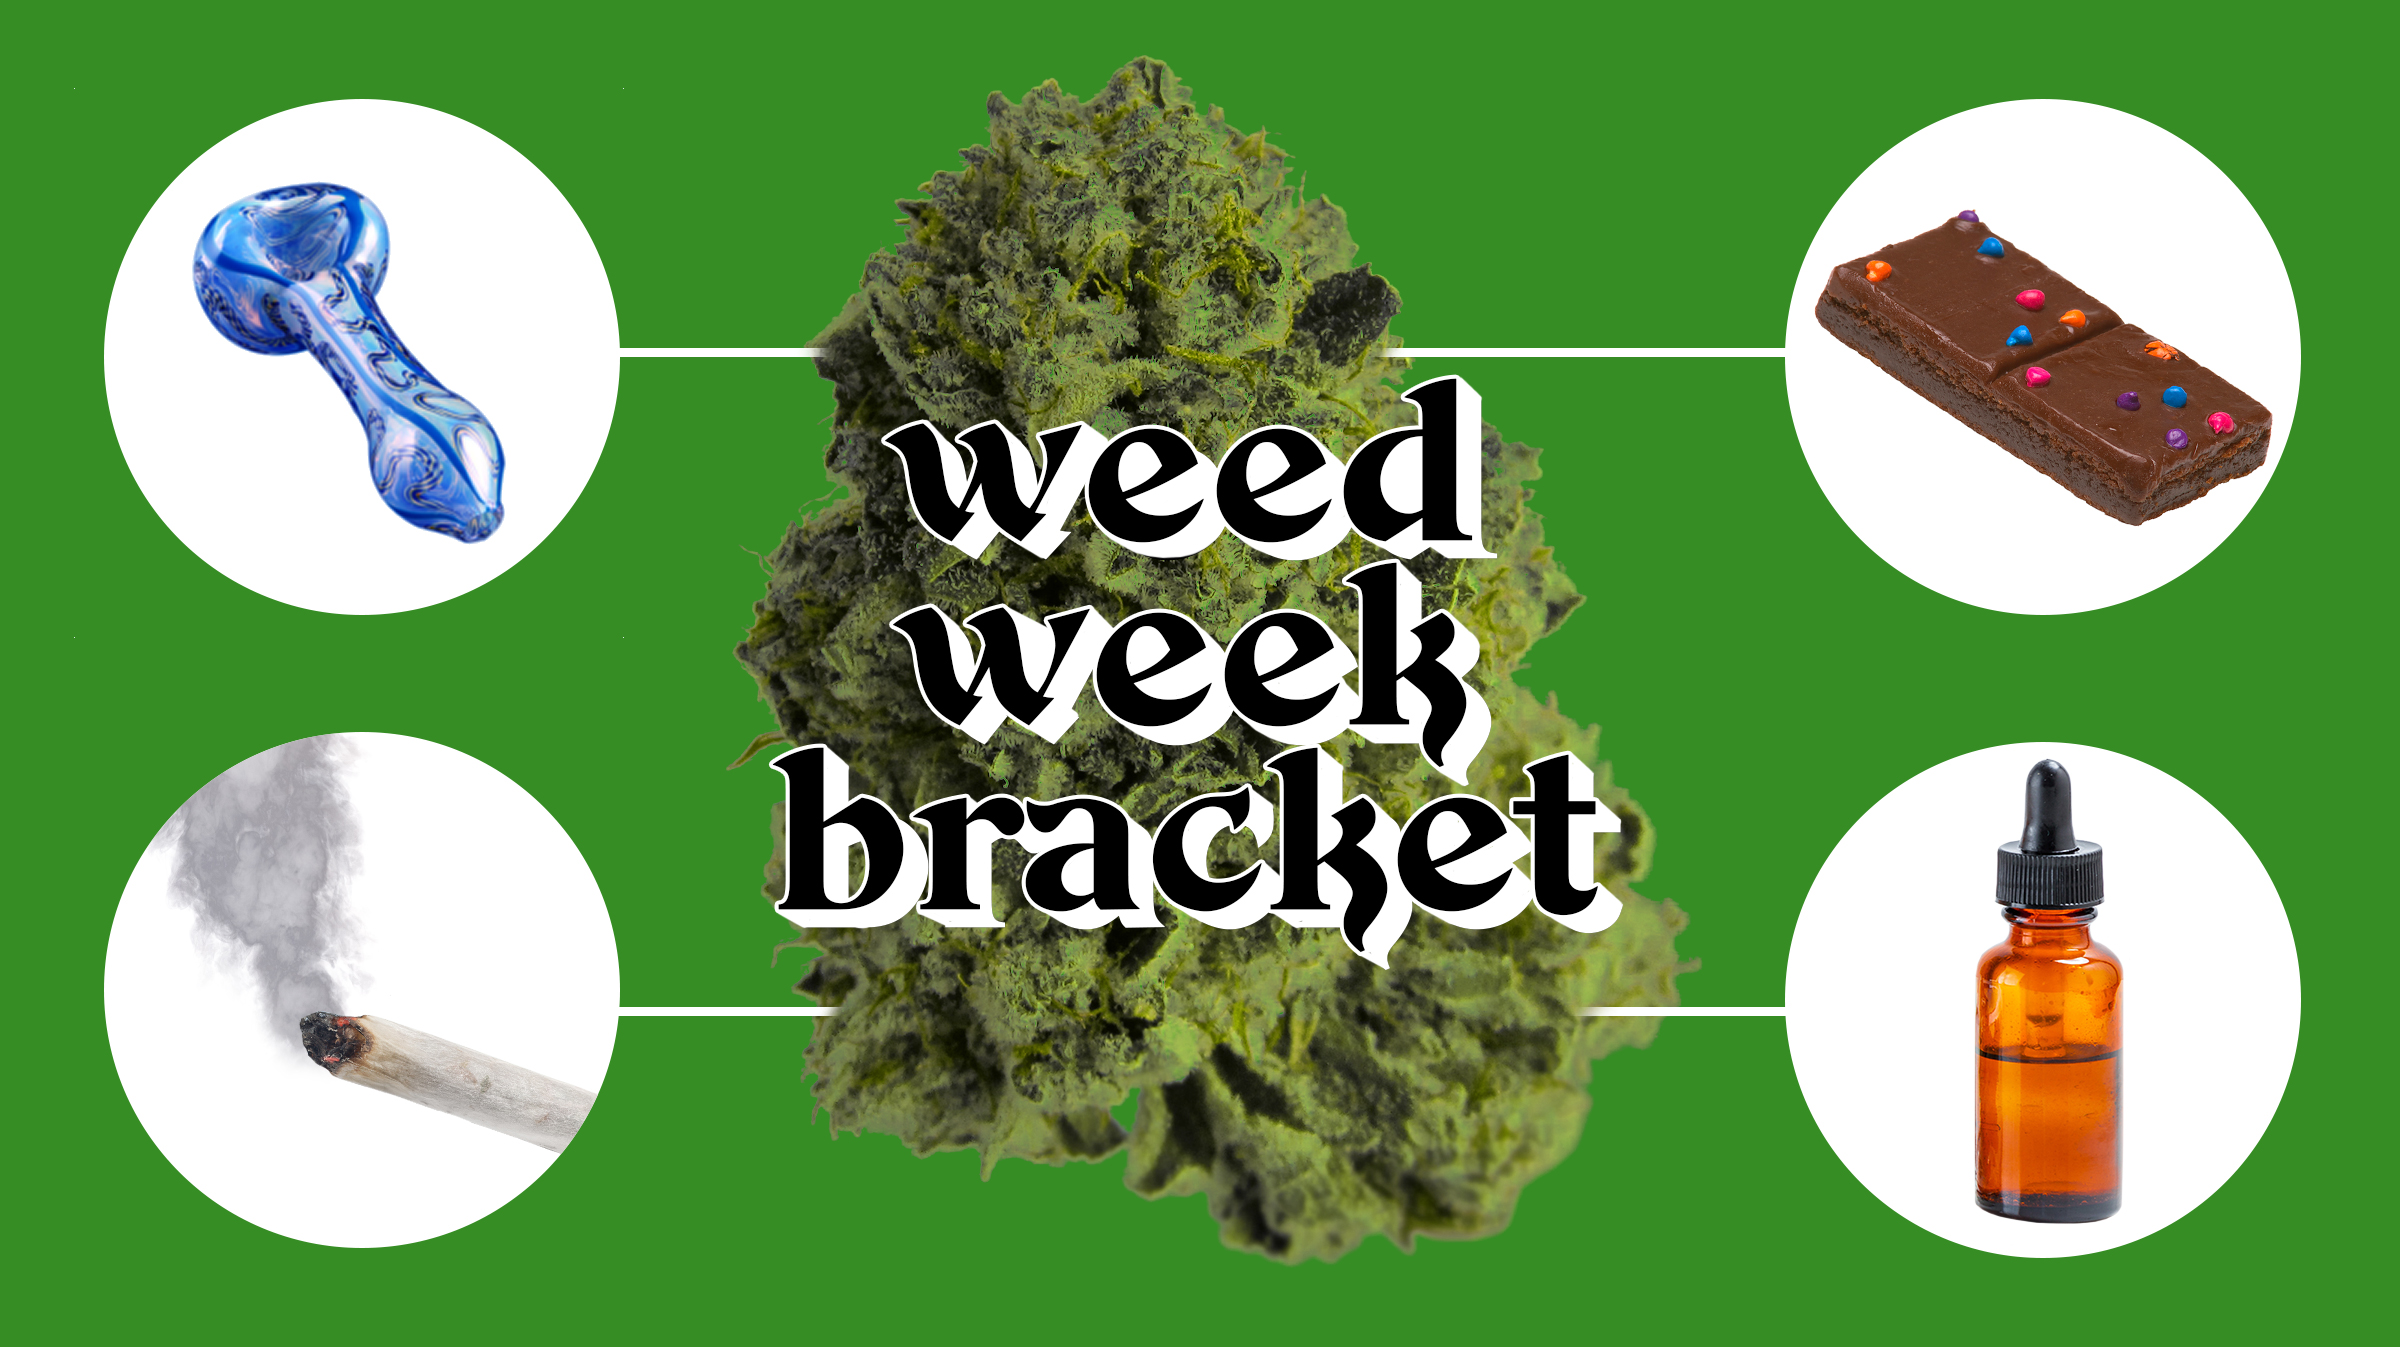 The Weed Week Bracket: What's the Best Way to Get High? - VICE